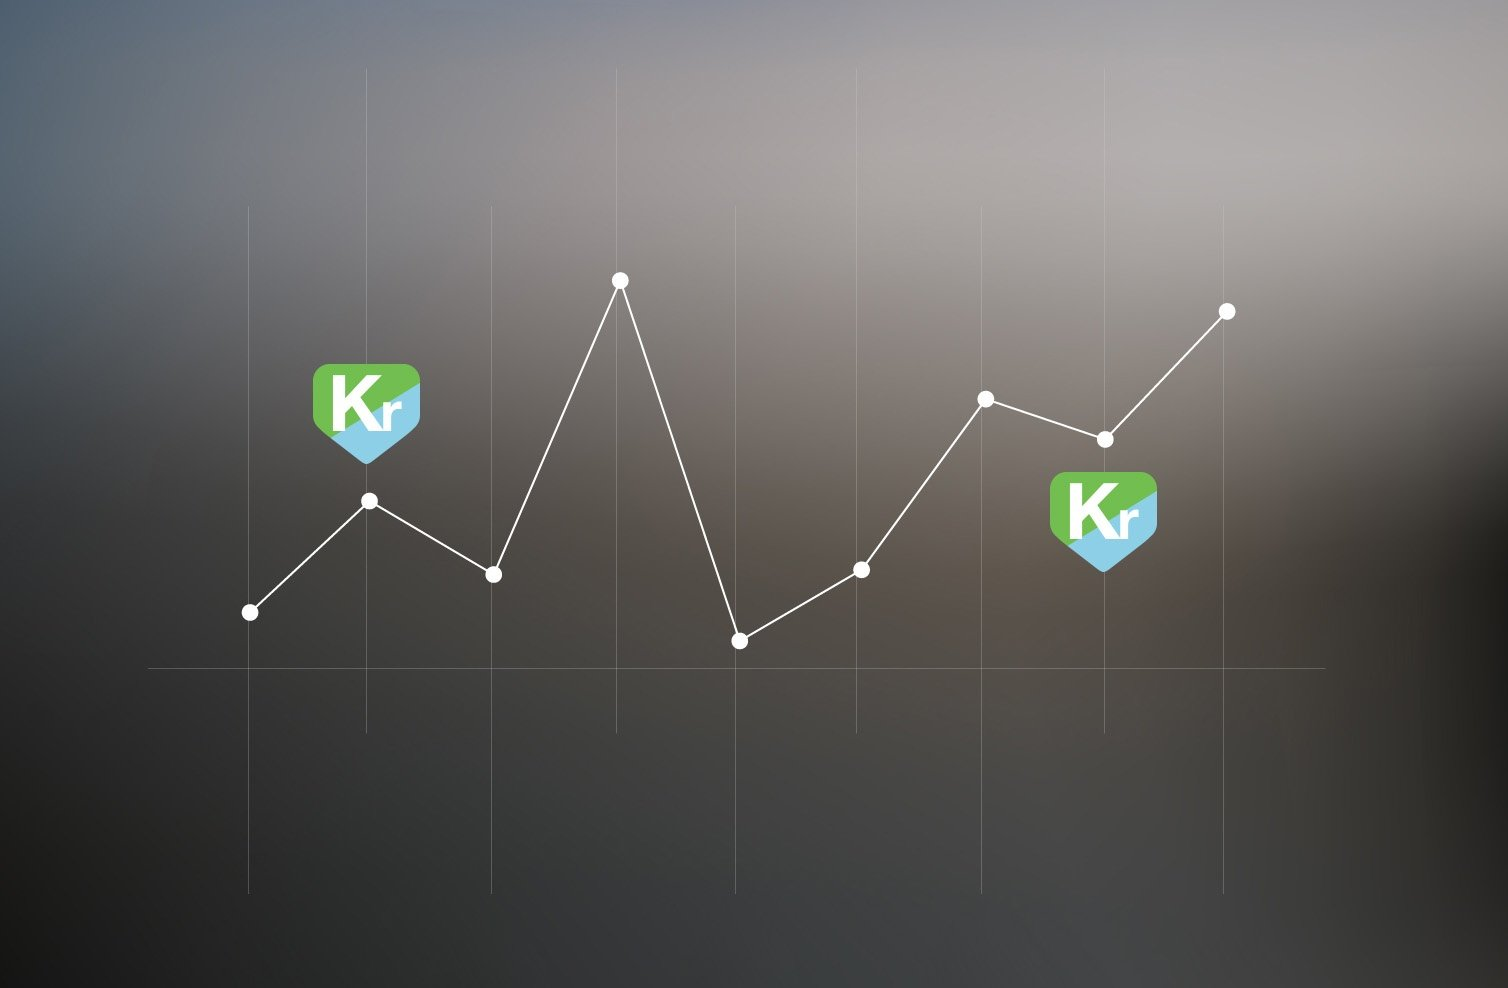 Kred Names Most Influential Venture Capitalists in Social Media